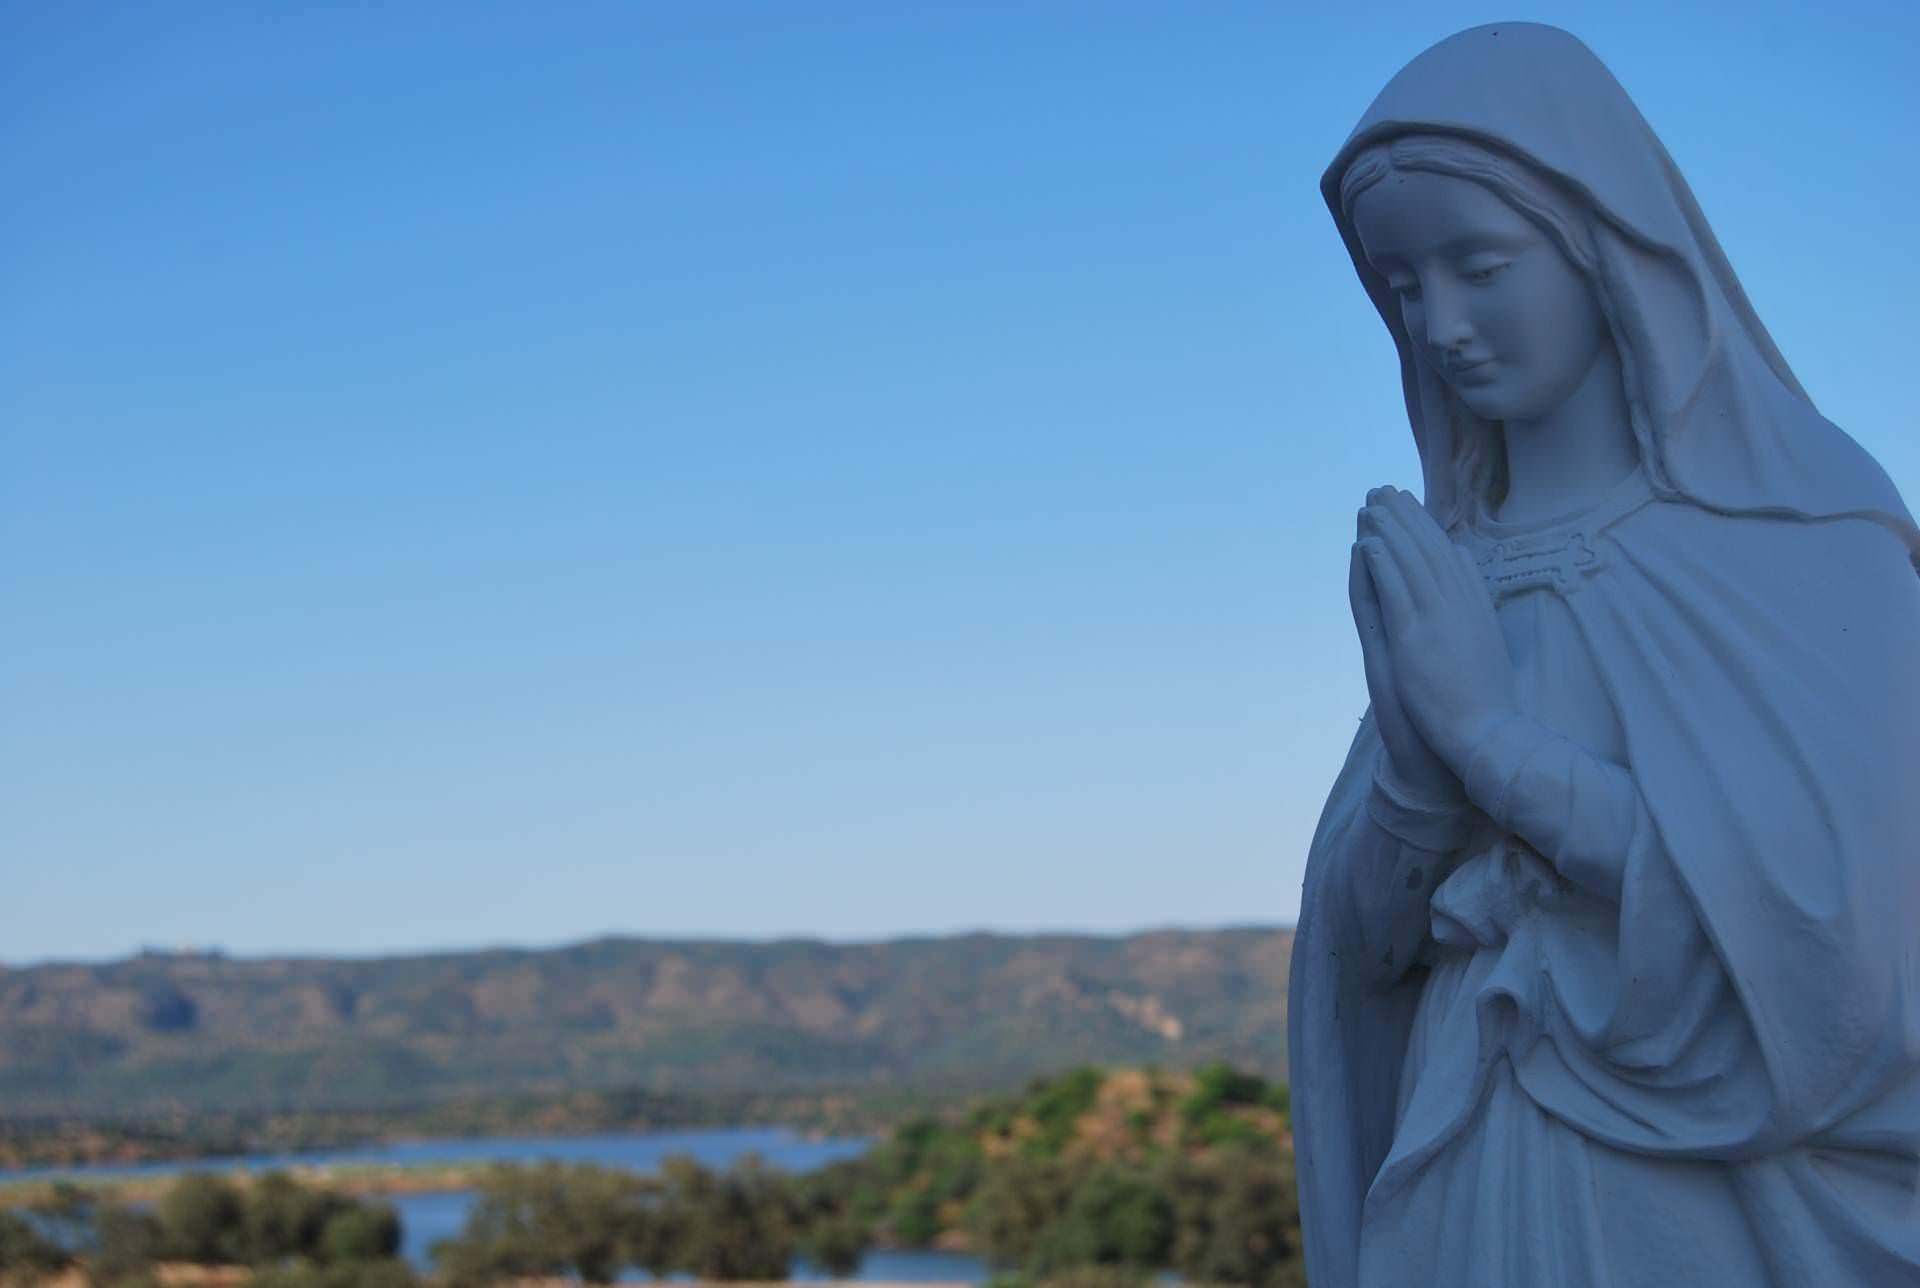 virgin, maria, sea, mother, mother of god, landscape, nature, flora, sky, blue sky, firmament, sun, sunny day, statue, sculpture, white, timetable, sentence, to pray, mary praying